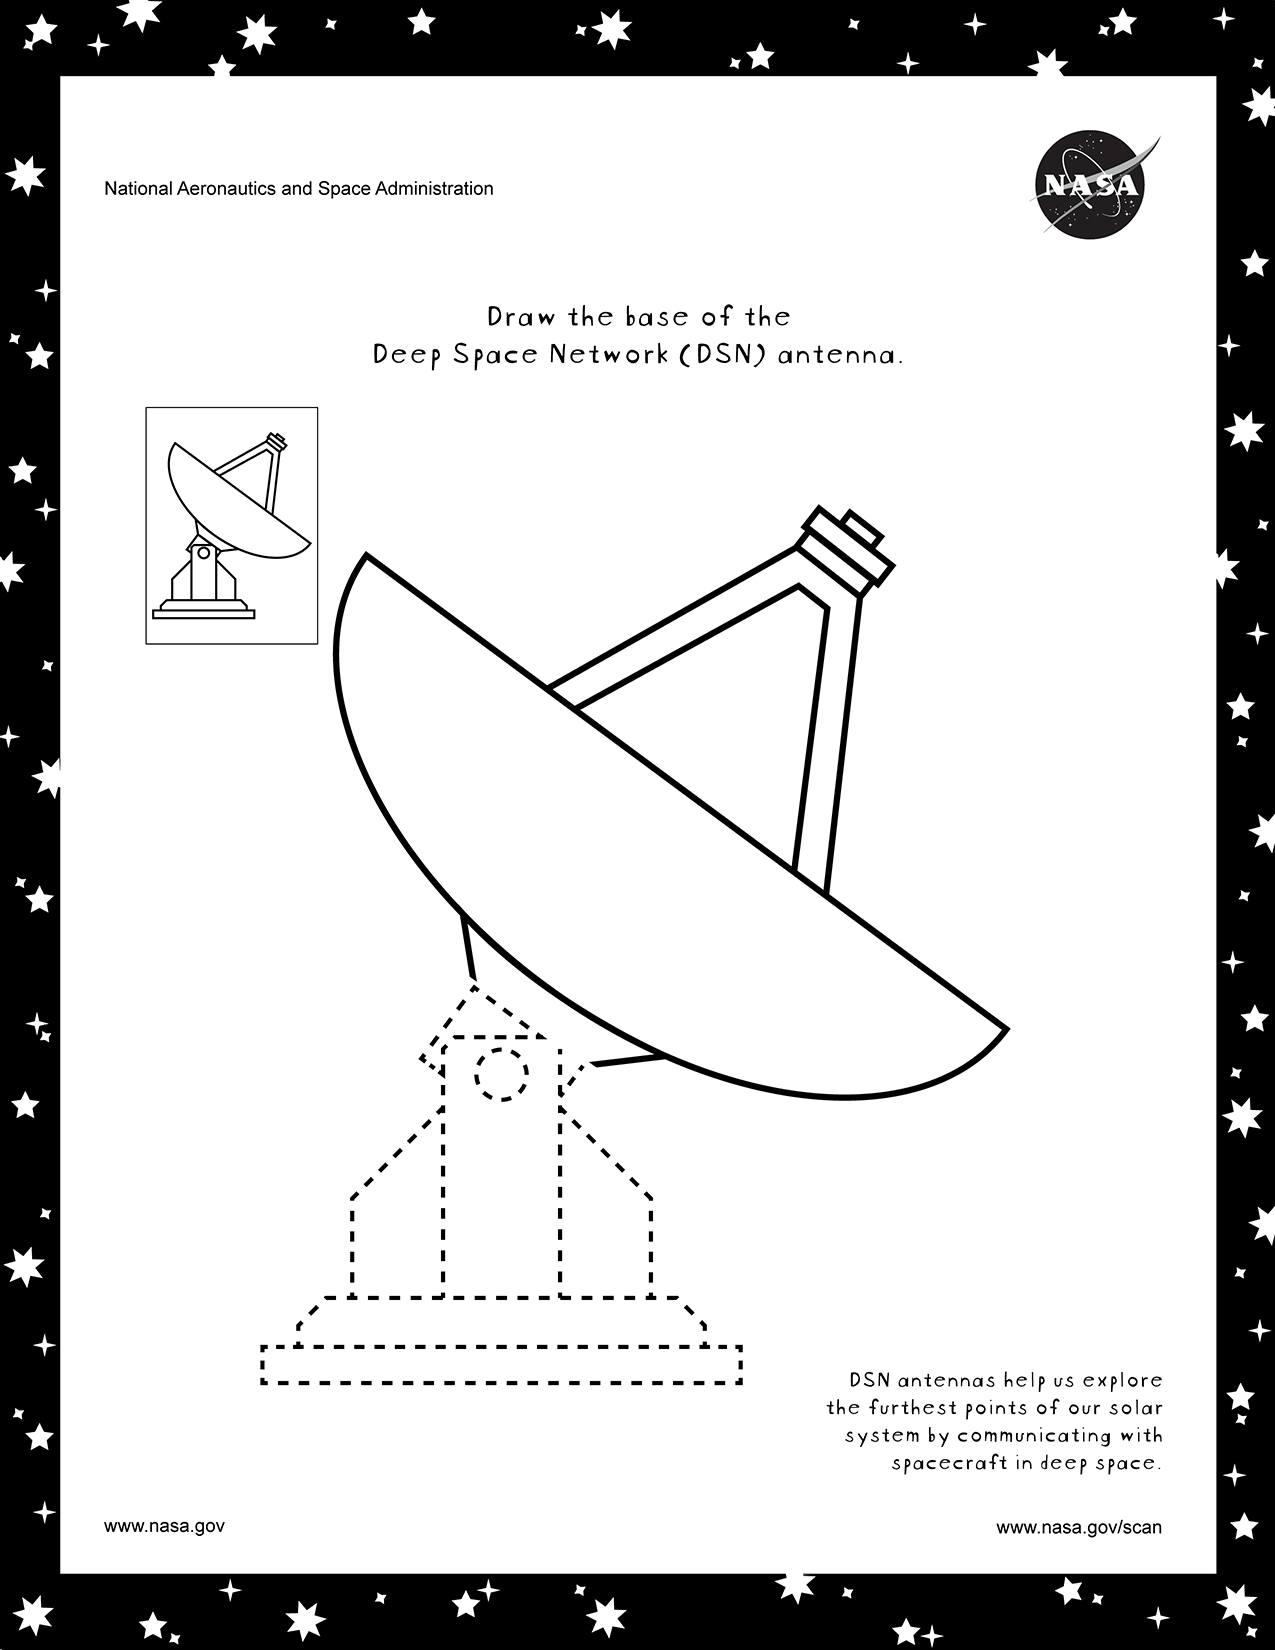 Coloring page for the DSN.